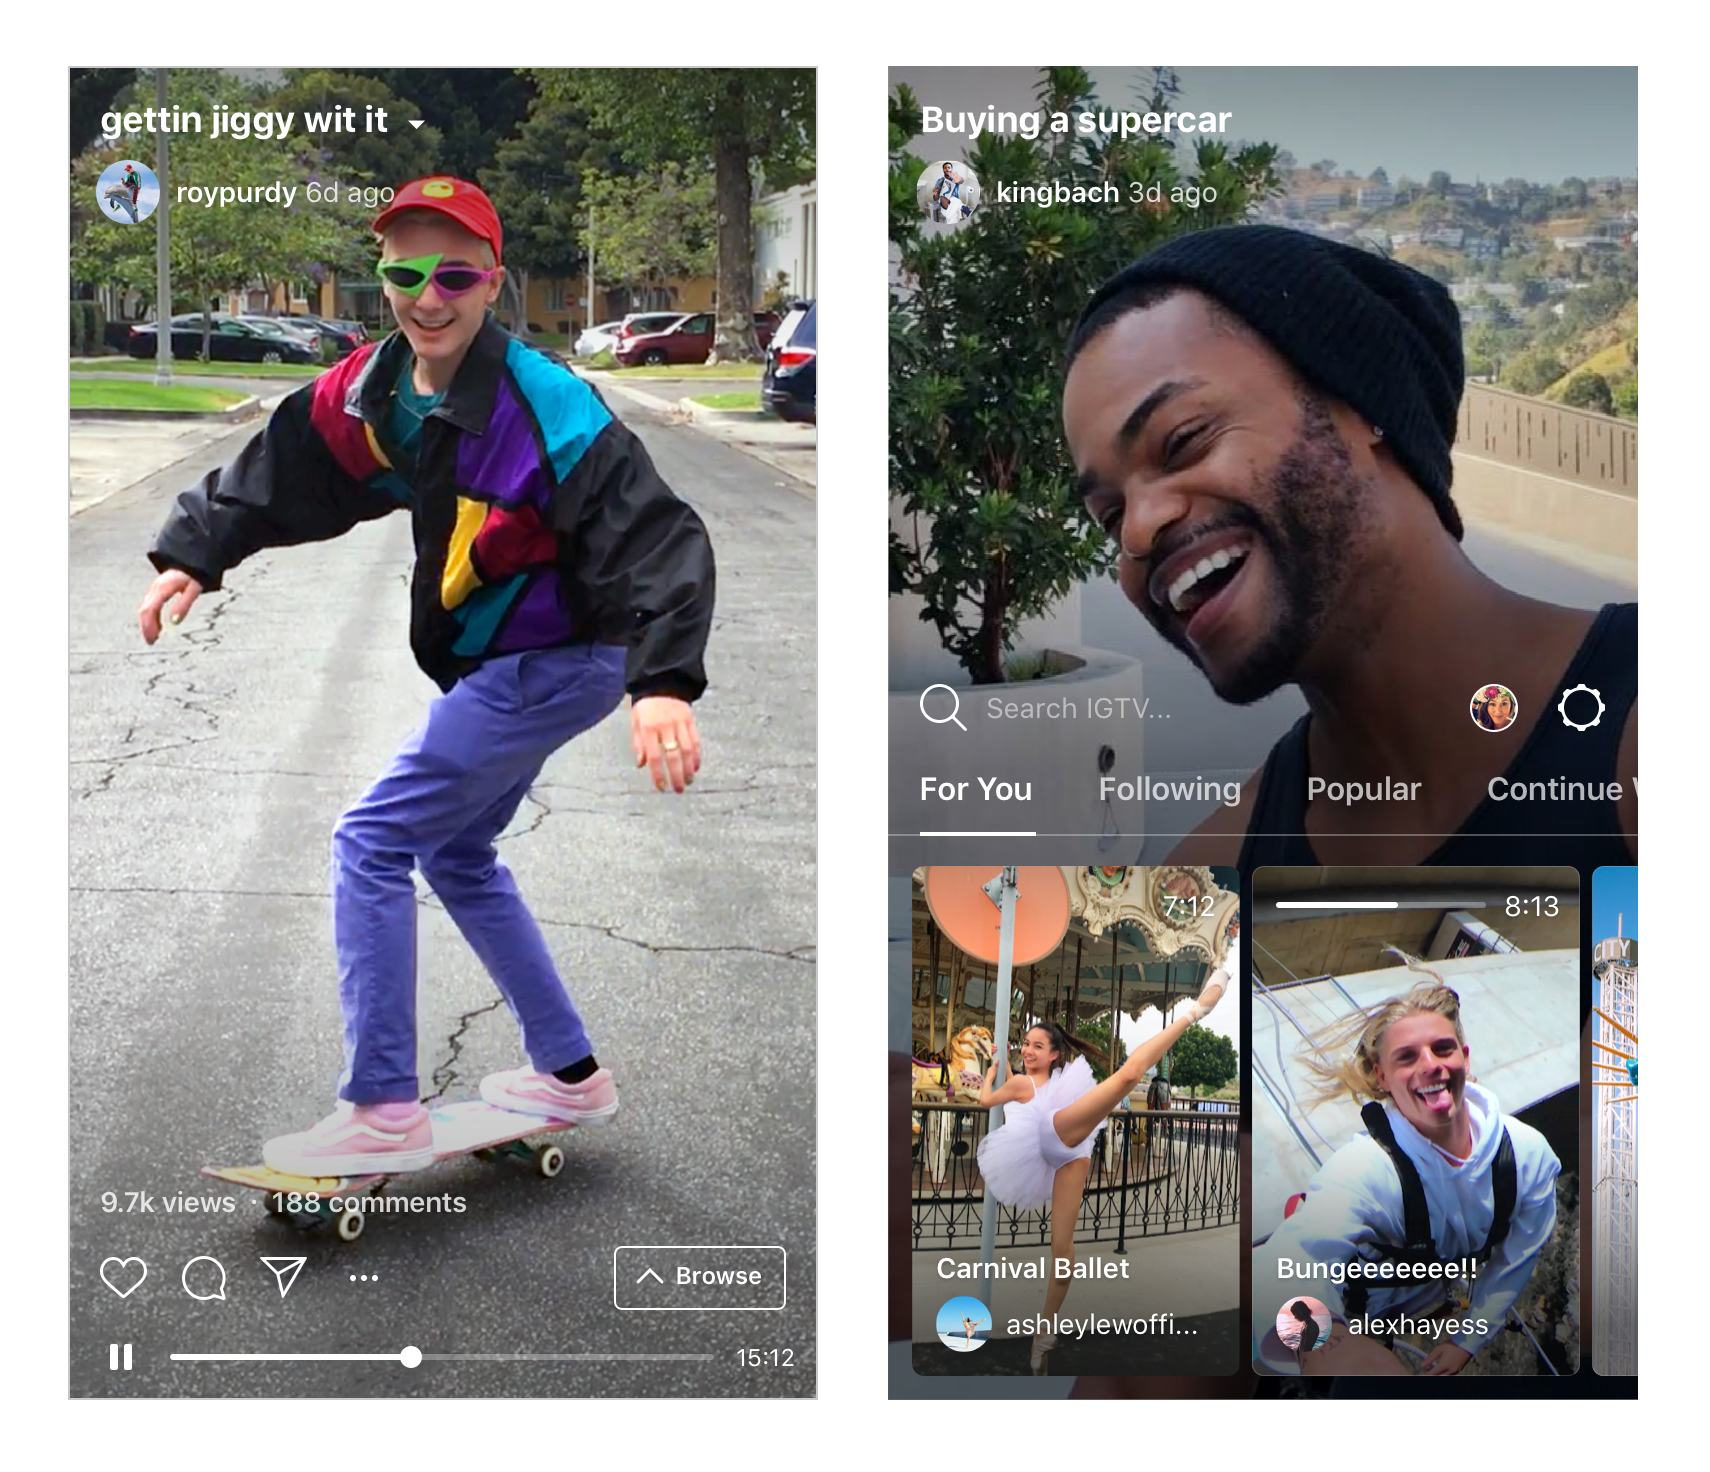 Fashion's Next Obsession Has Launched: Video ForInstagram